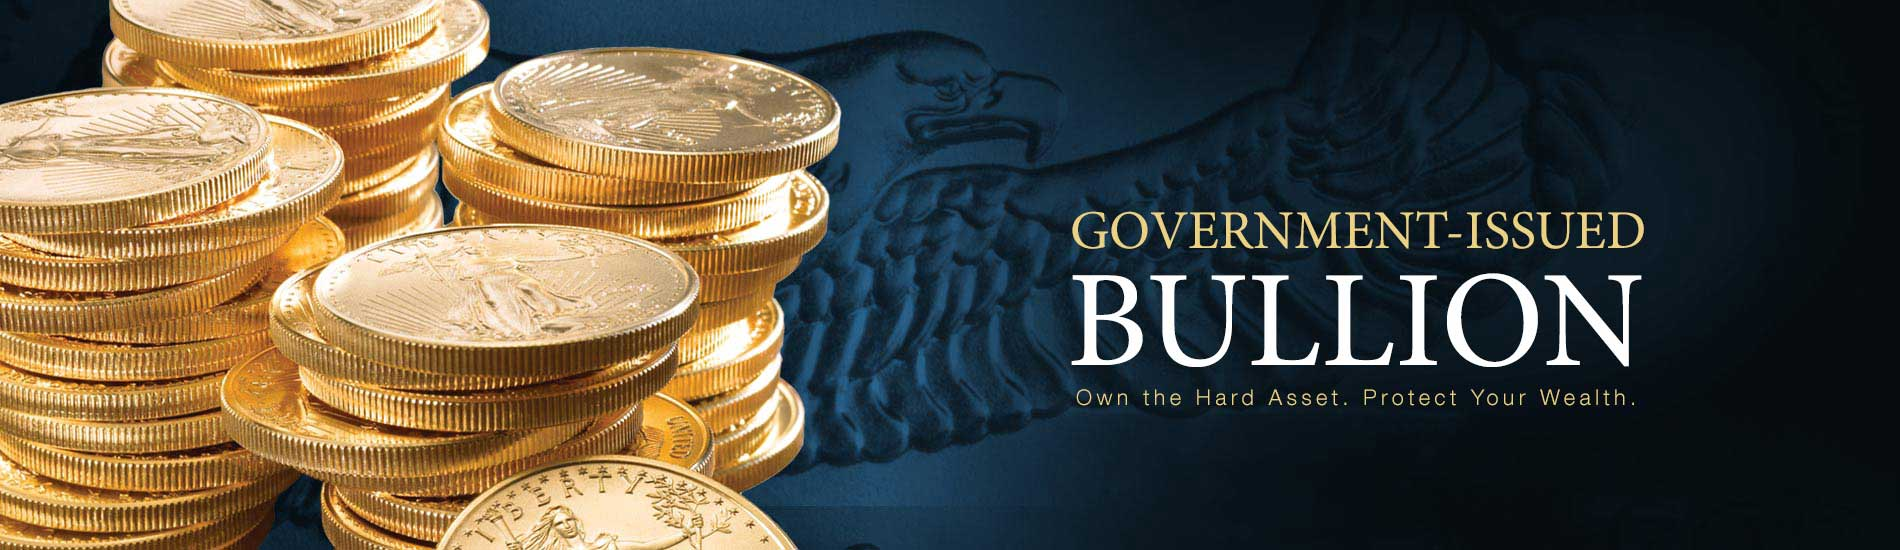 Stack of gold american eagle bullion coins against a dark background with the text Government-Issued Bullion